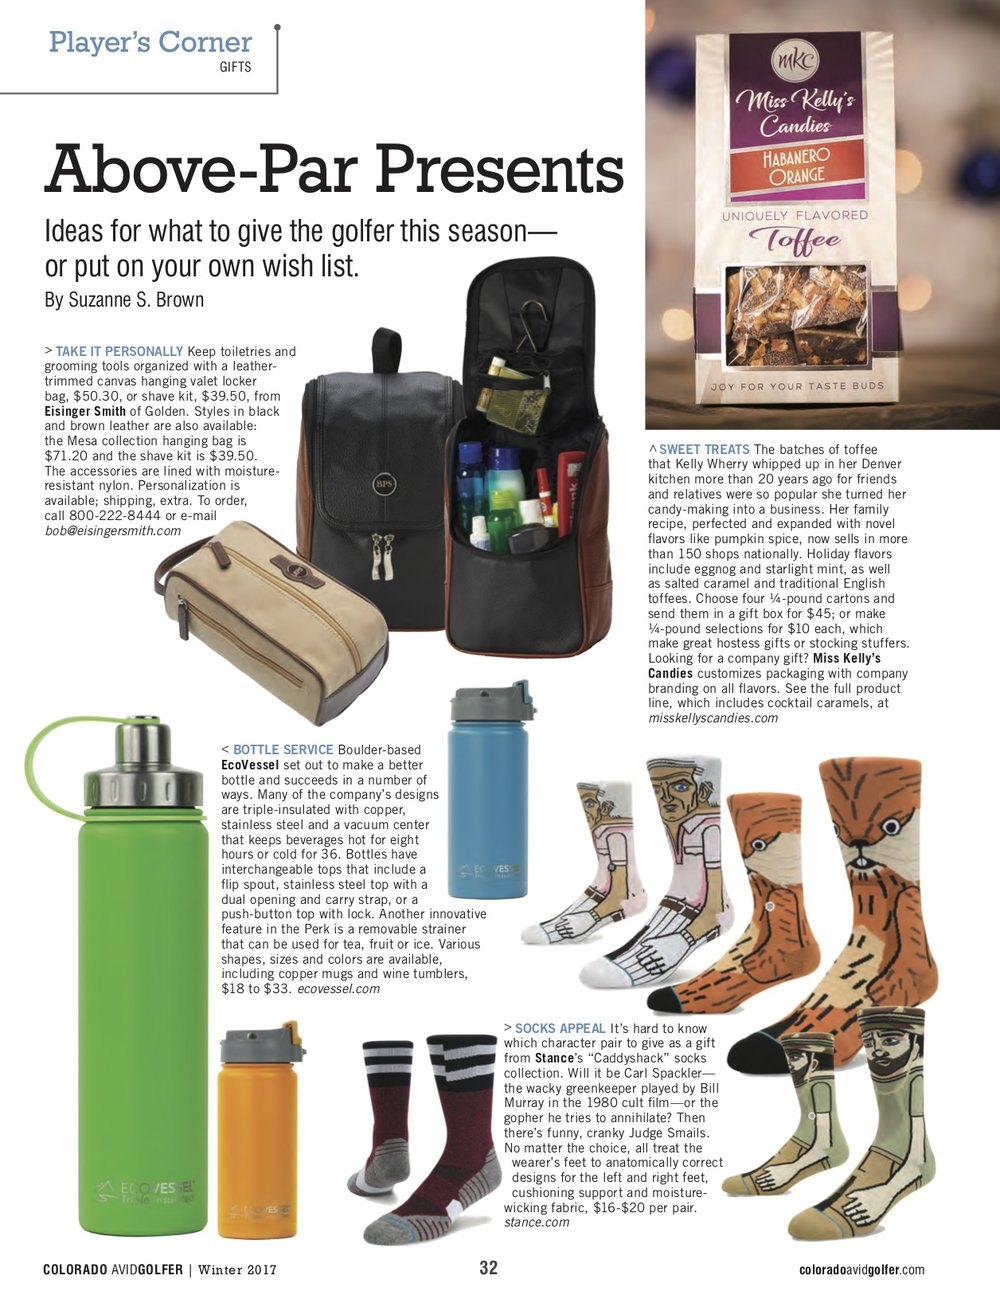 Gifts for all kinds of golfers, in Colorado Avid Golfer Magazine